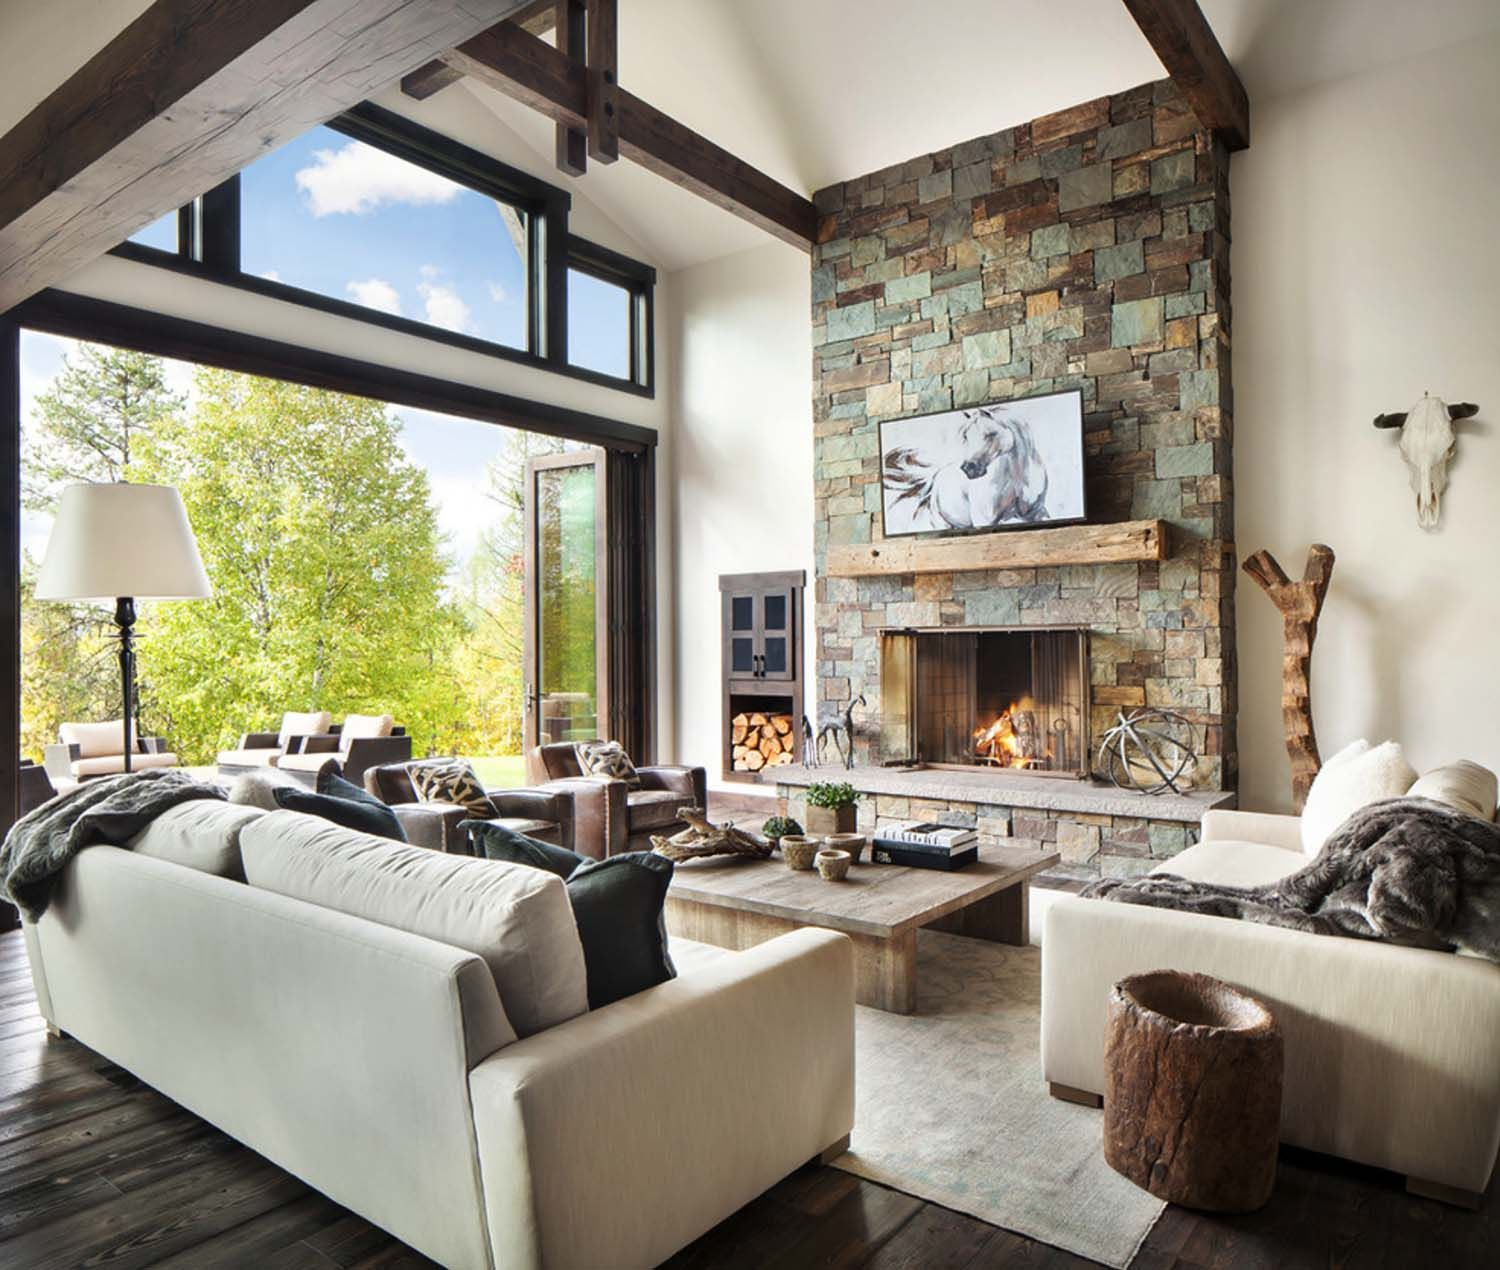 Rusticmodern dwelling nestled in the northern Rocky Mountains  Living Room  Modern rustic